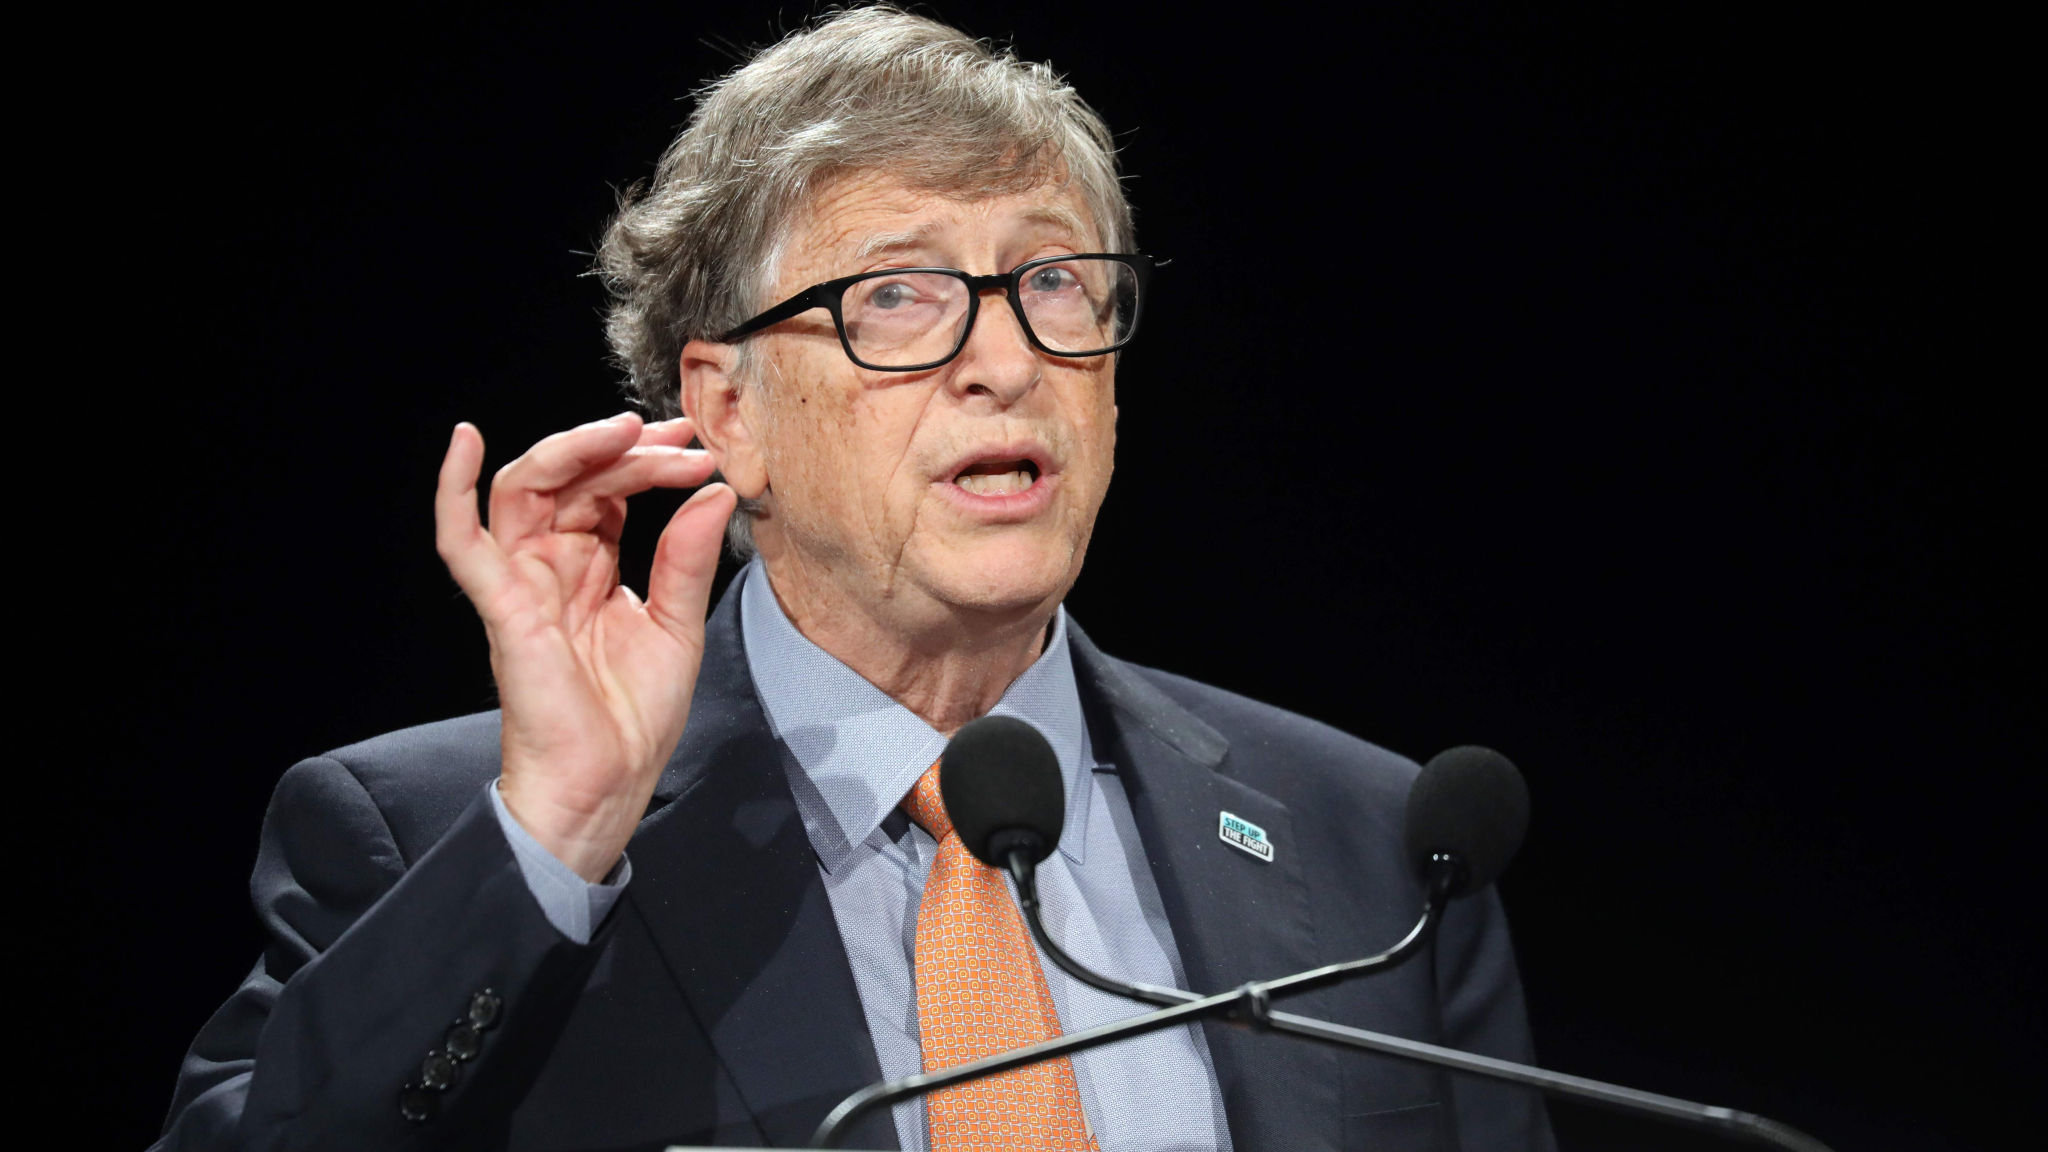 Bill Gates expresses regret over meetings with Jeffrey Epstein